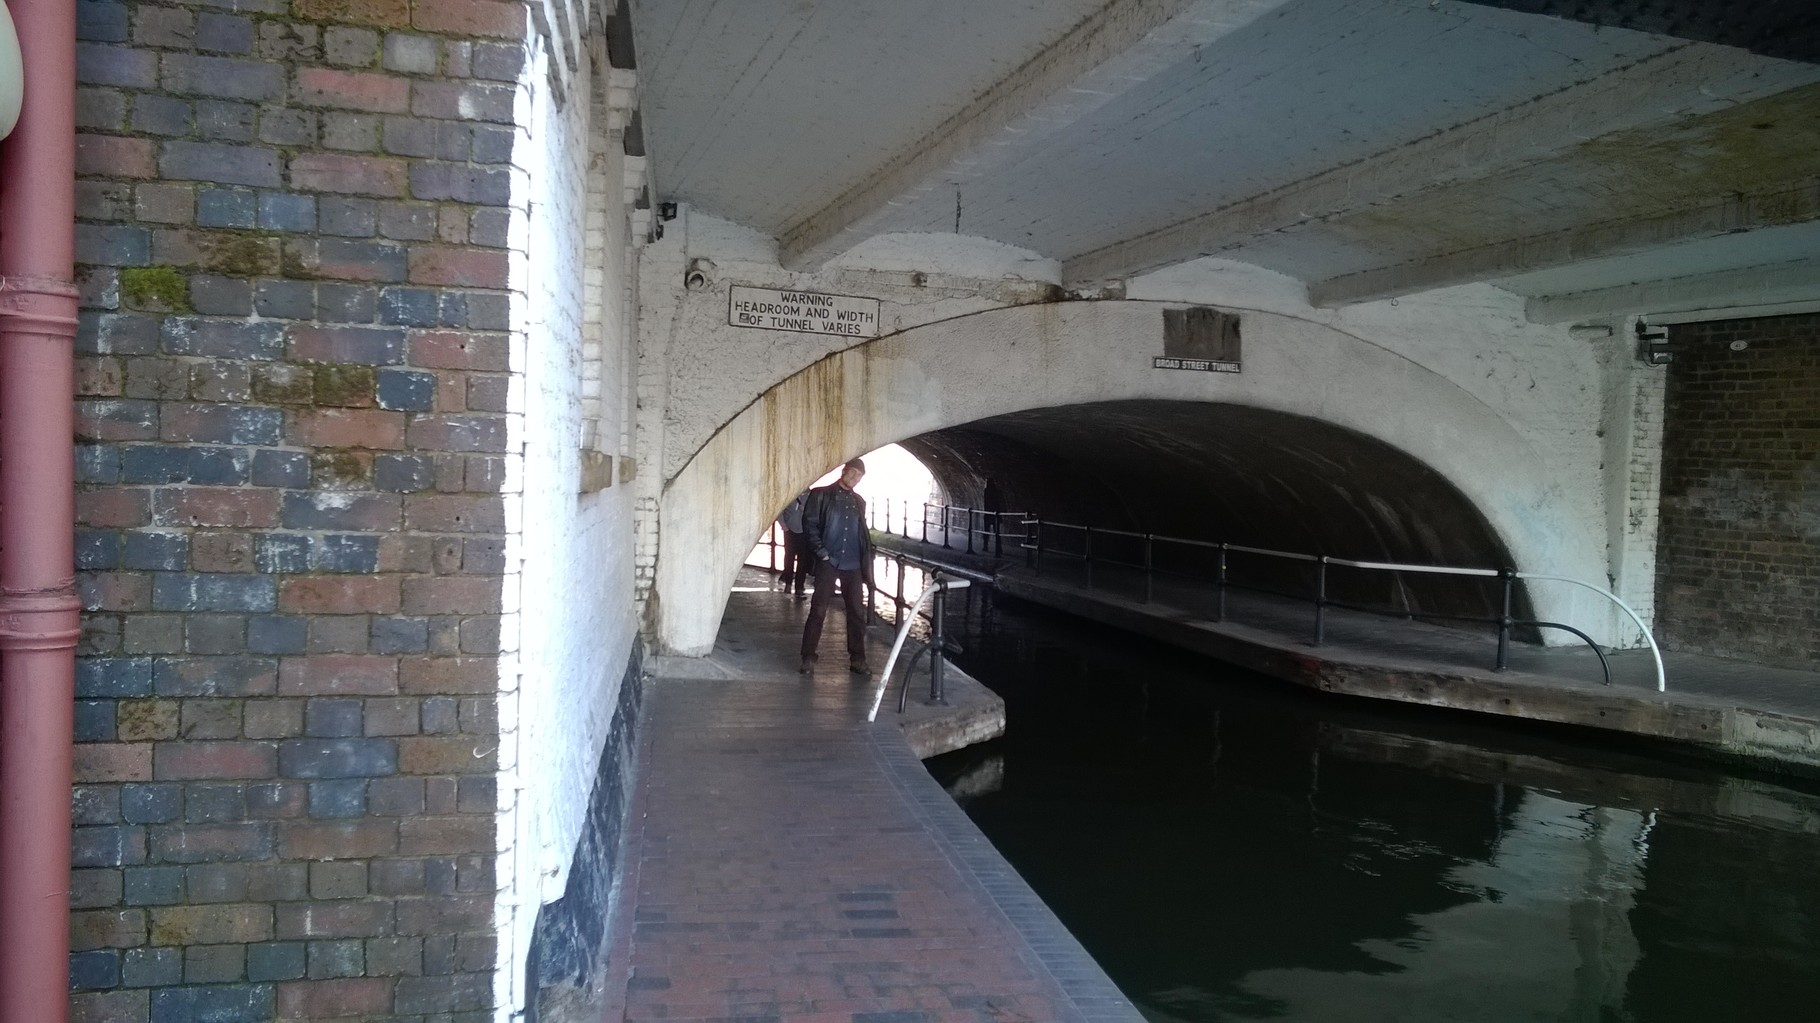 Jenya had to duck under some of the bridges over the canals.